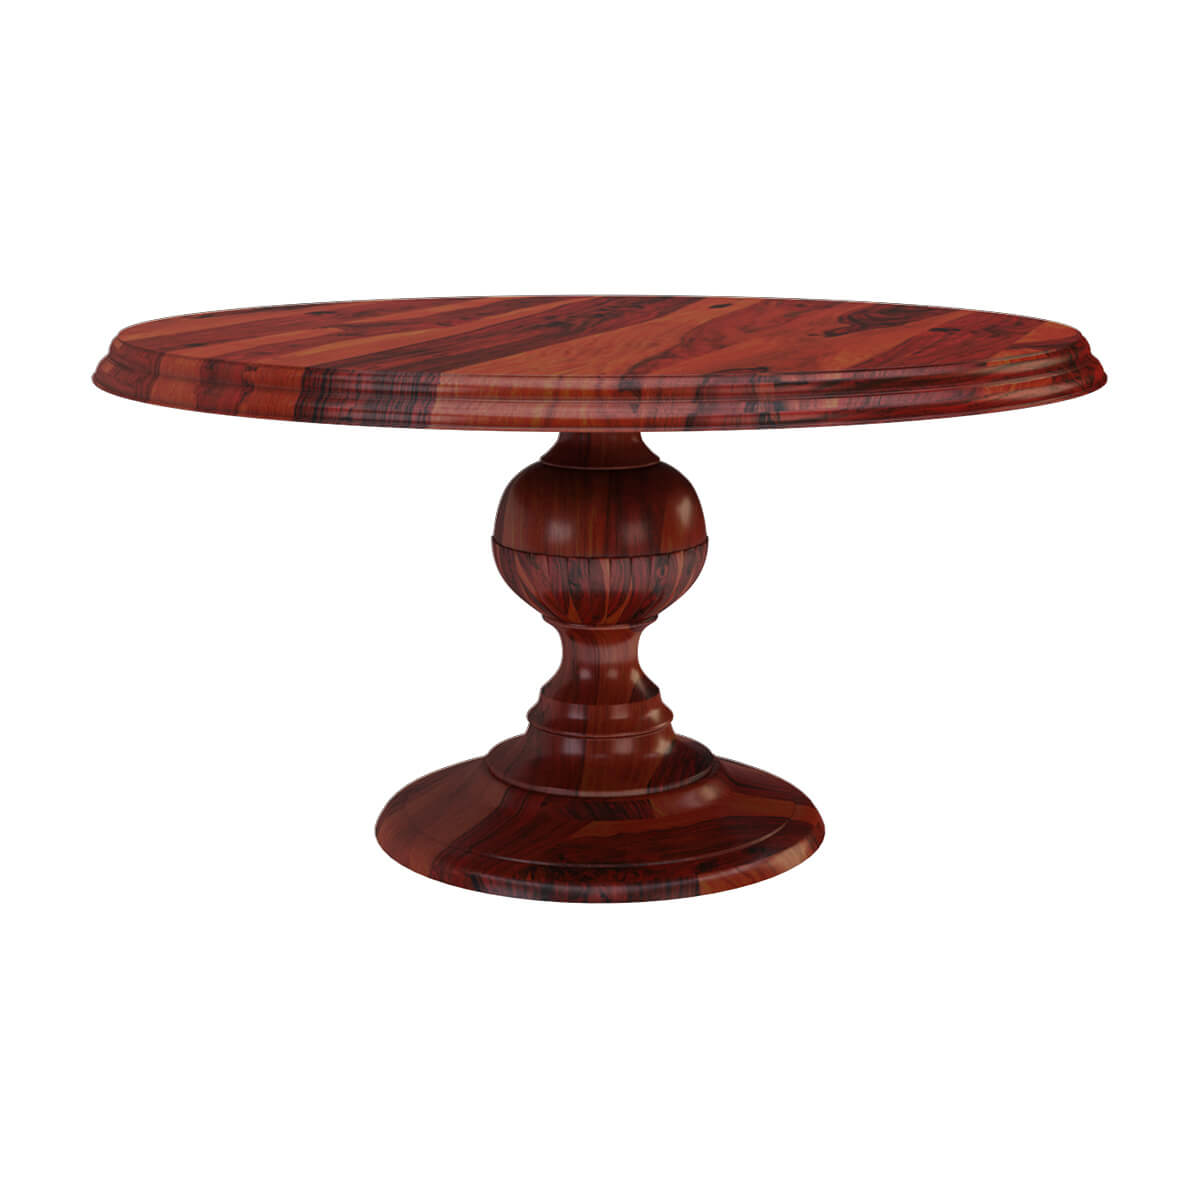 Sierra concepts 60 solid wood rustic pedestal round for Solid wood round dining room table